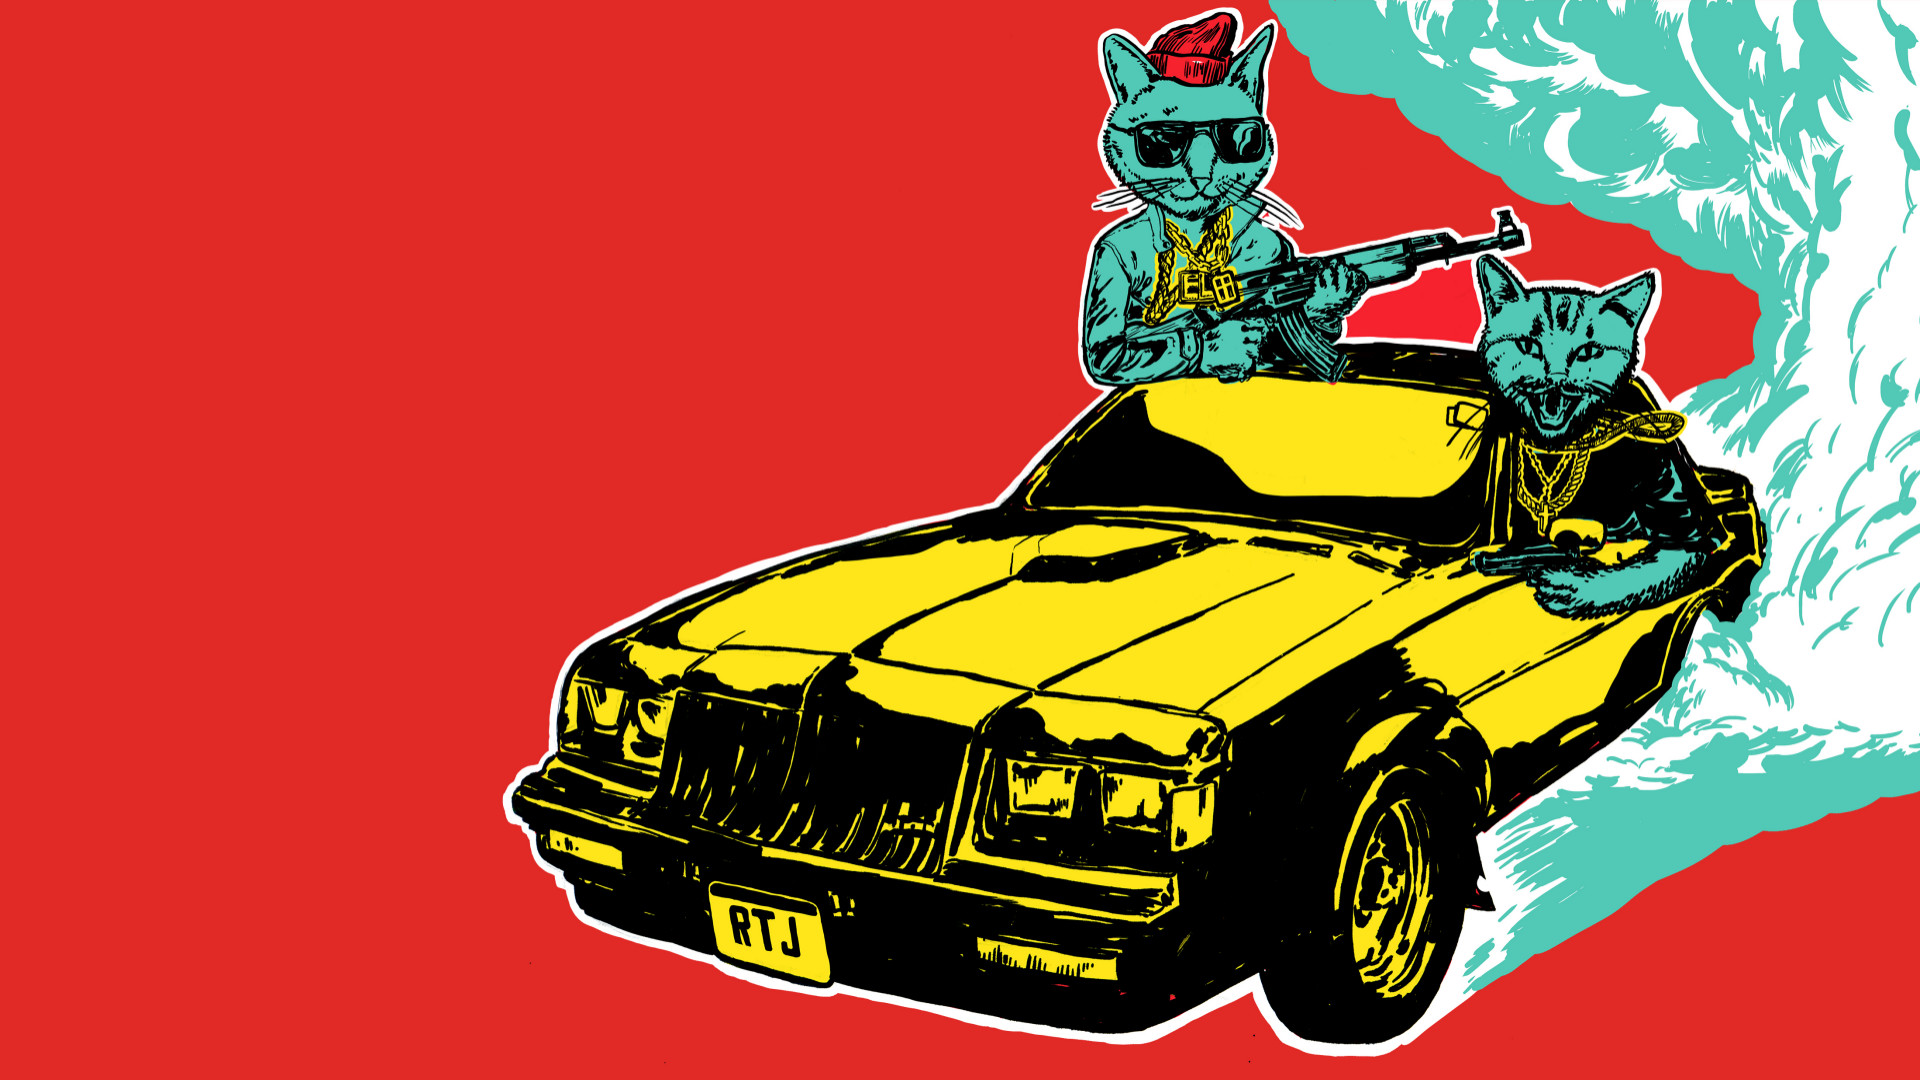 [1920×1080][RTJ] Meow The Jewels